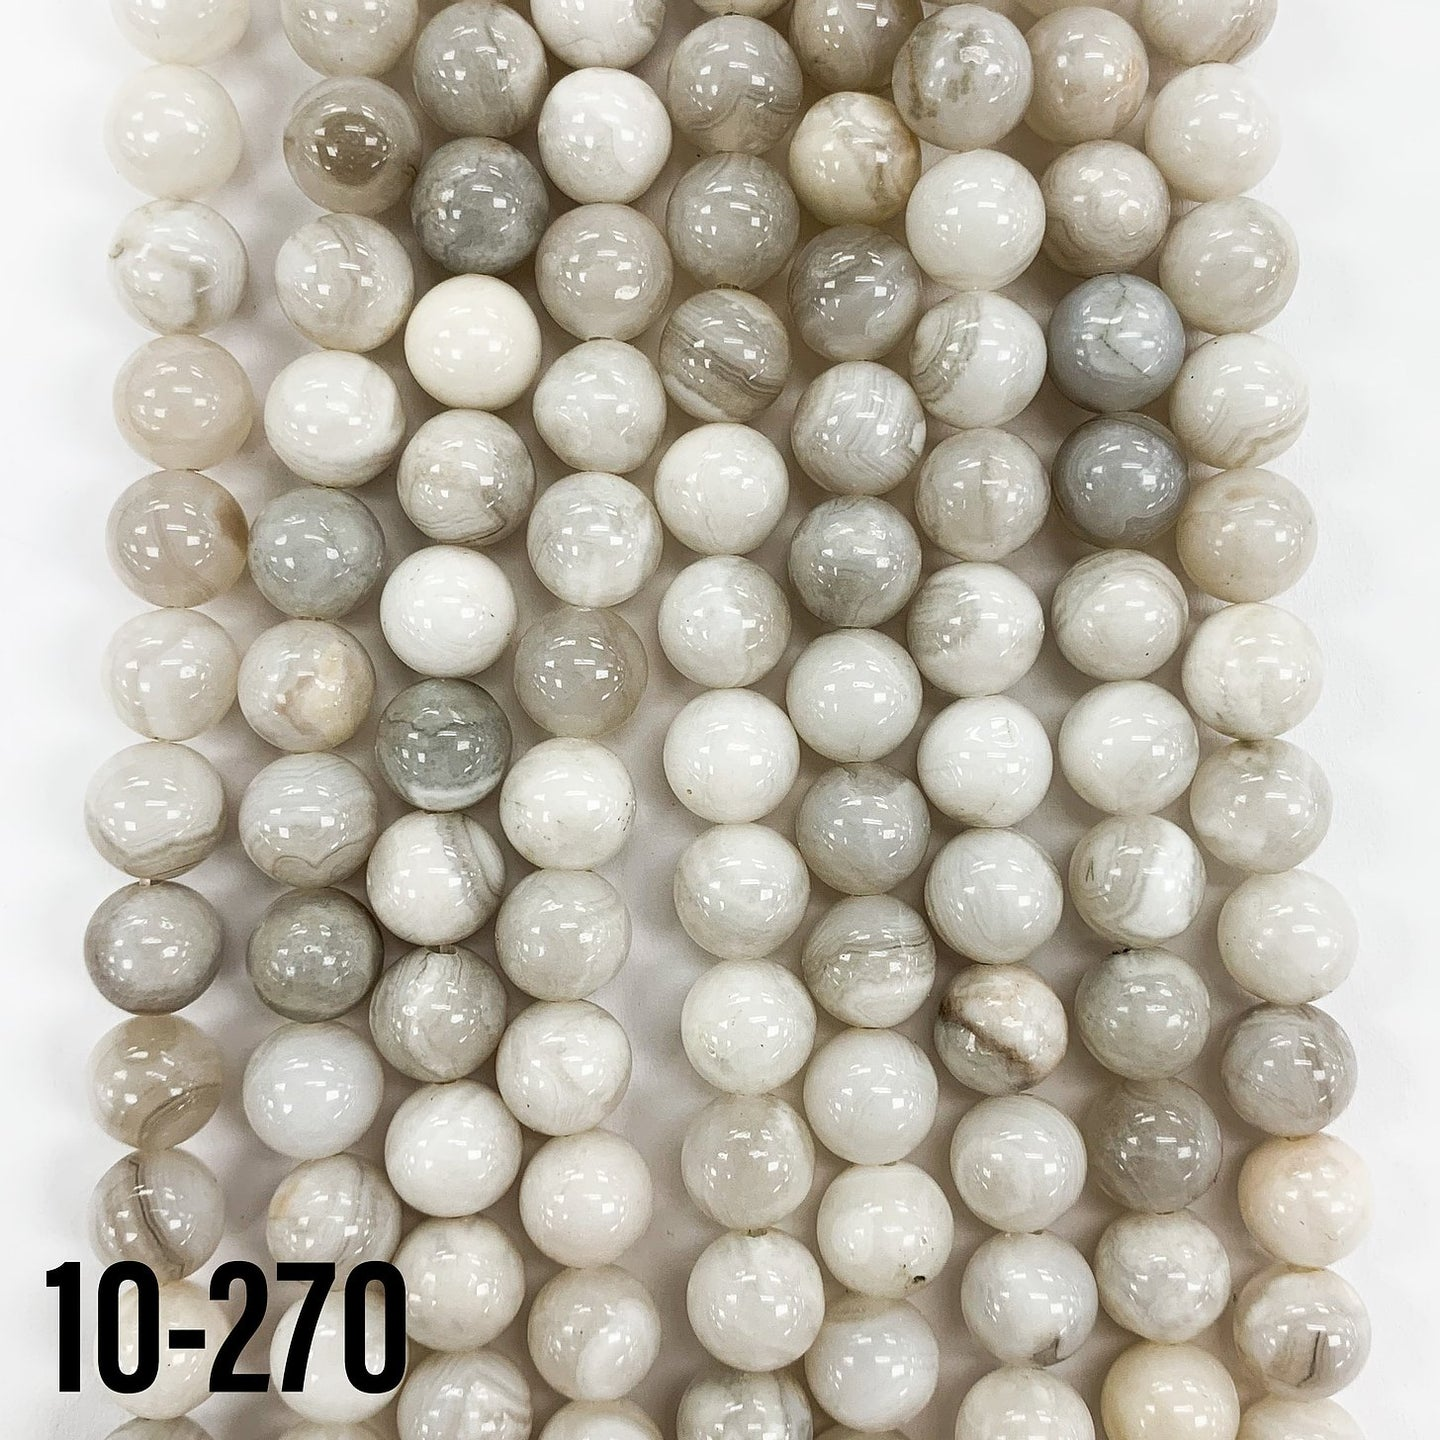 White Banded Agate Natural Round Gemstone Bead Strand 15